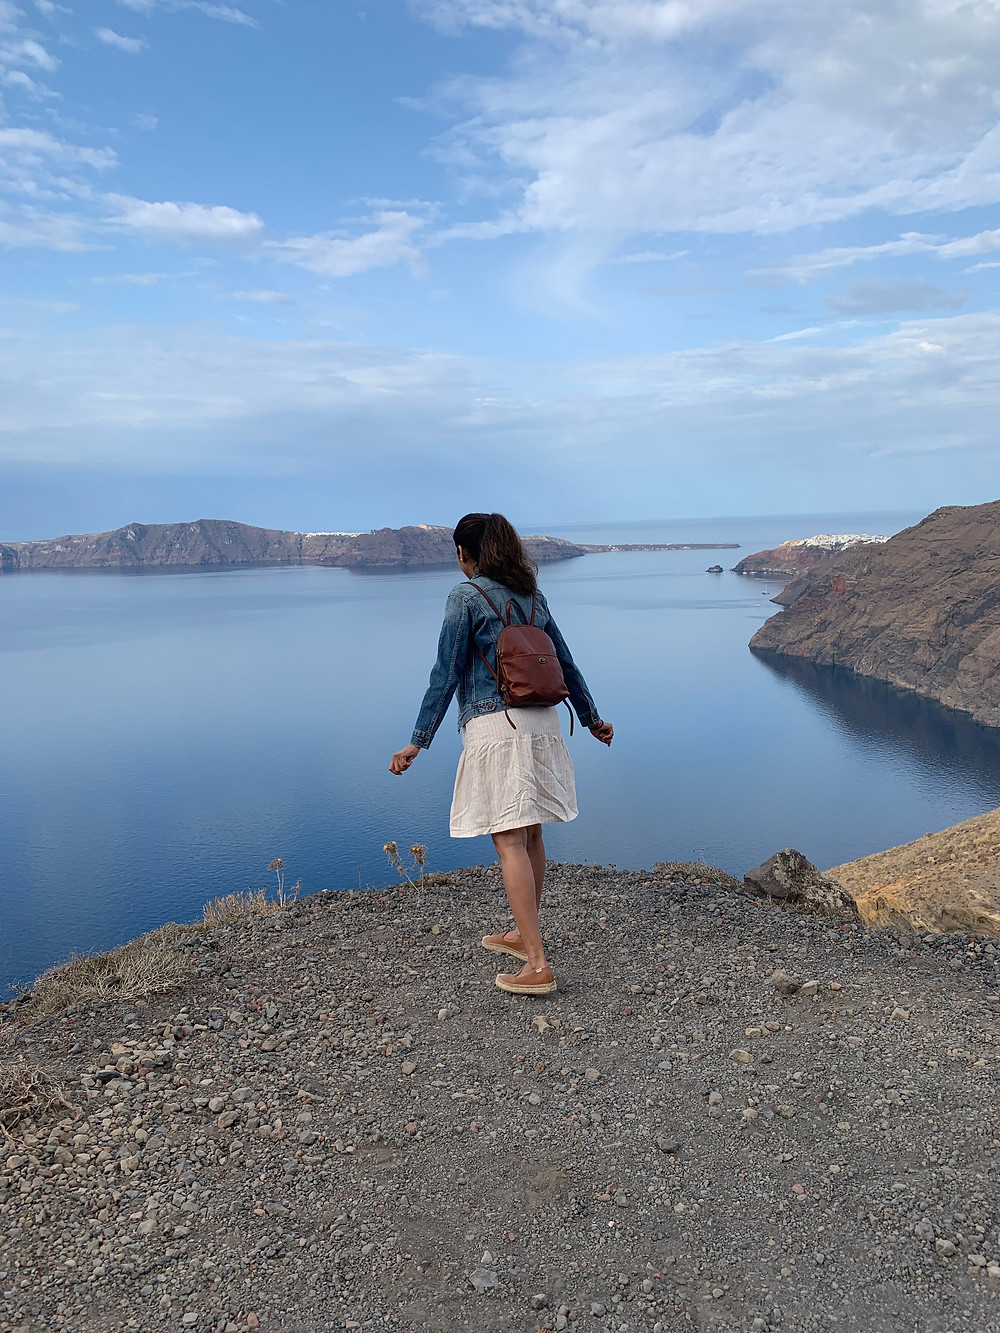 Vaishali Patel of Sanskar Teaching looking over the edge of a steep cliff on the path between Oia and Fira in Santorini Greece